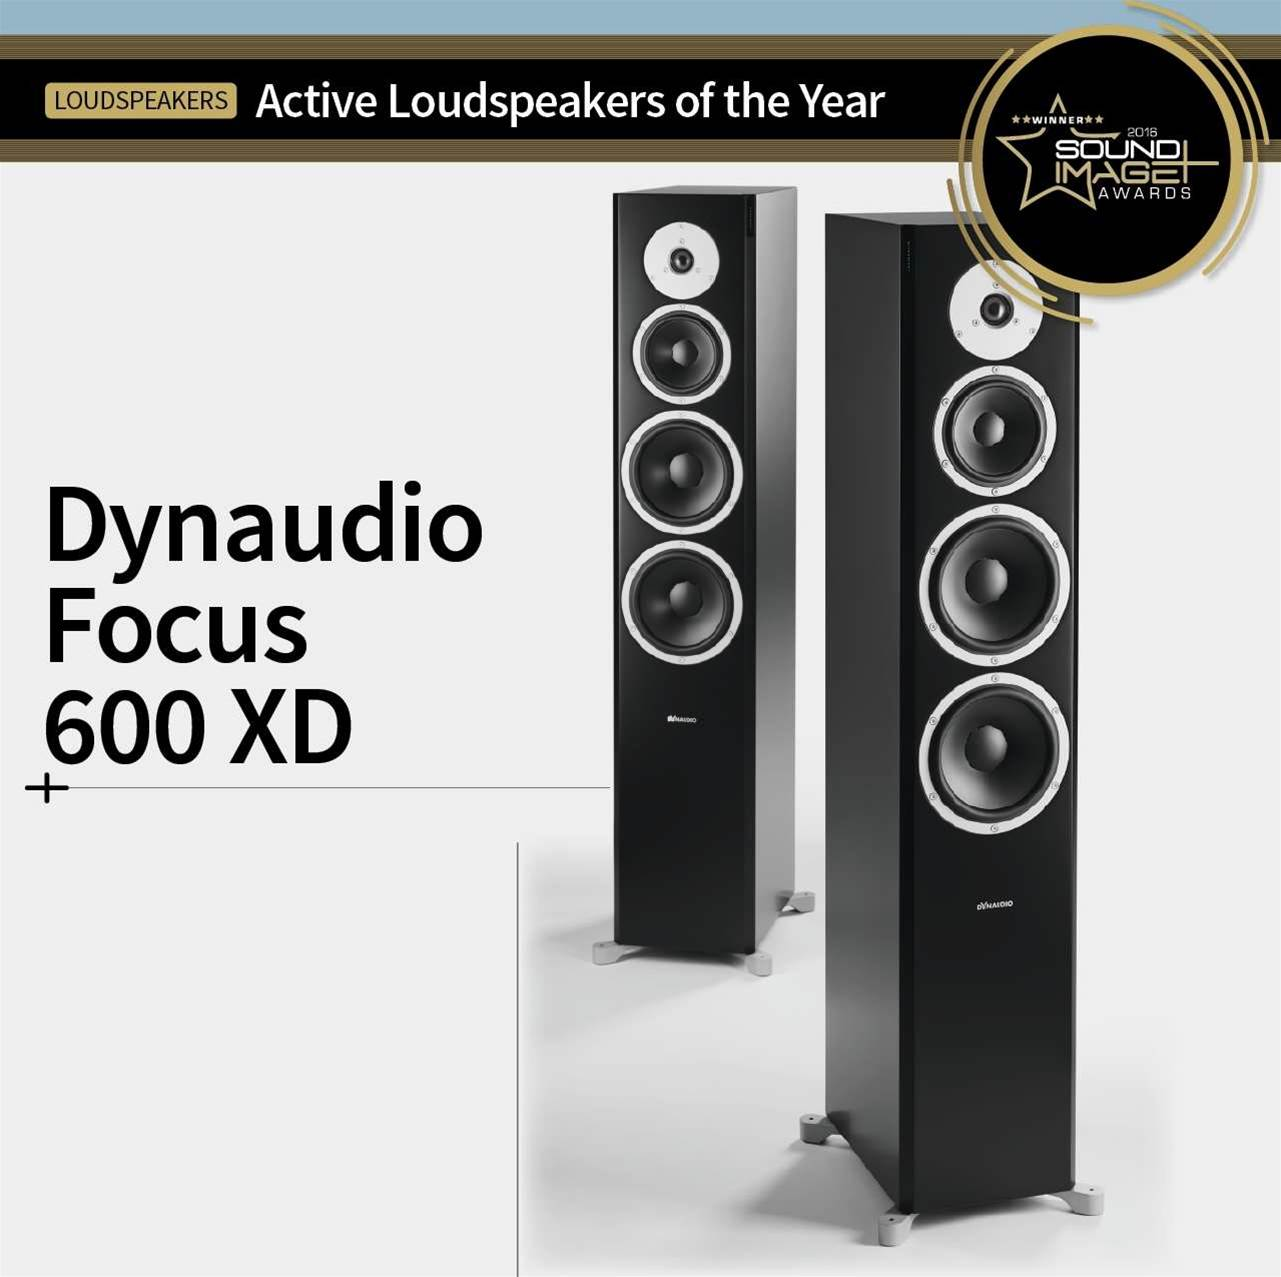 Dynaudio Focus 600XD active loudspeakers REVIEW